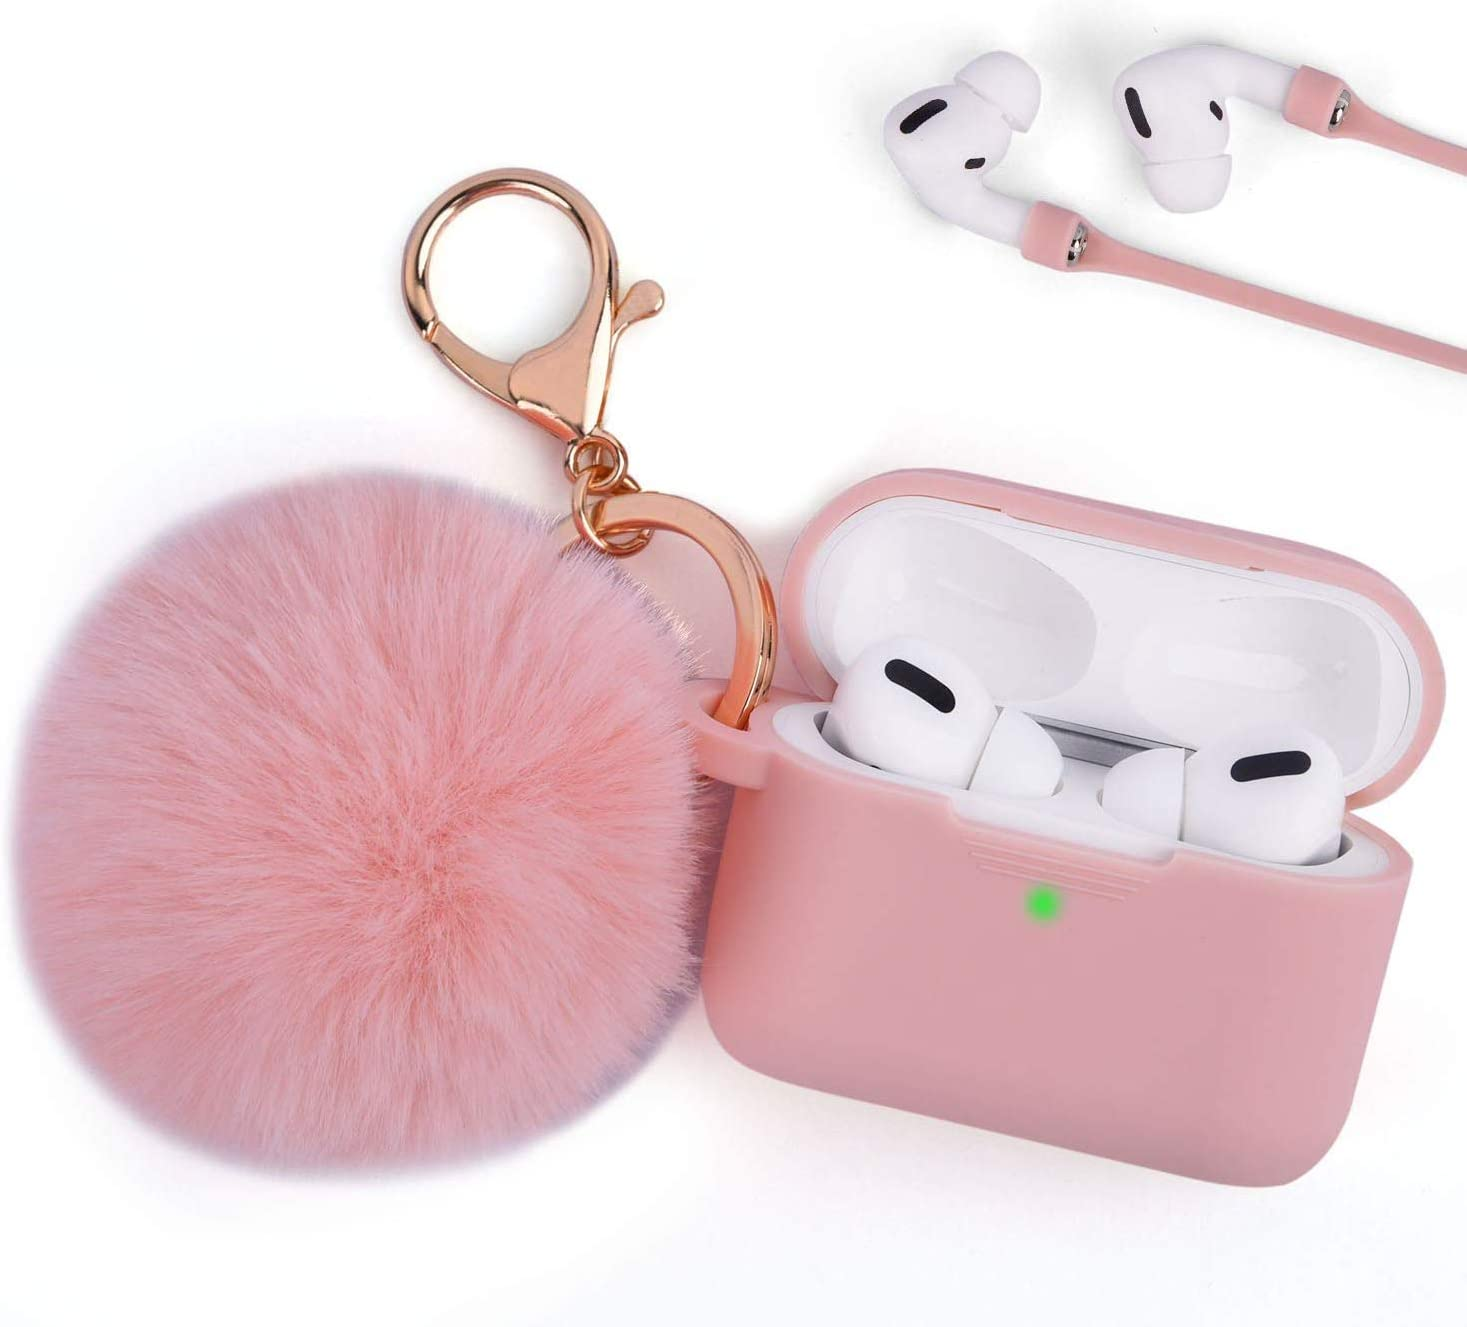 Airpods Pro Case Keychain Cute, TOROTOP Women Soft Silicone Protective Case Cover Compatible for Apple Airpods Pro Charing Case with Pom Fur Ball Keychain/Strap Accessories LED Visible (Light Pink#2)